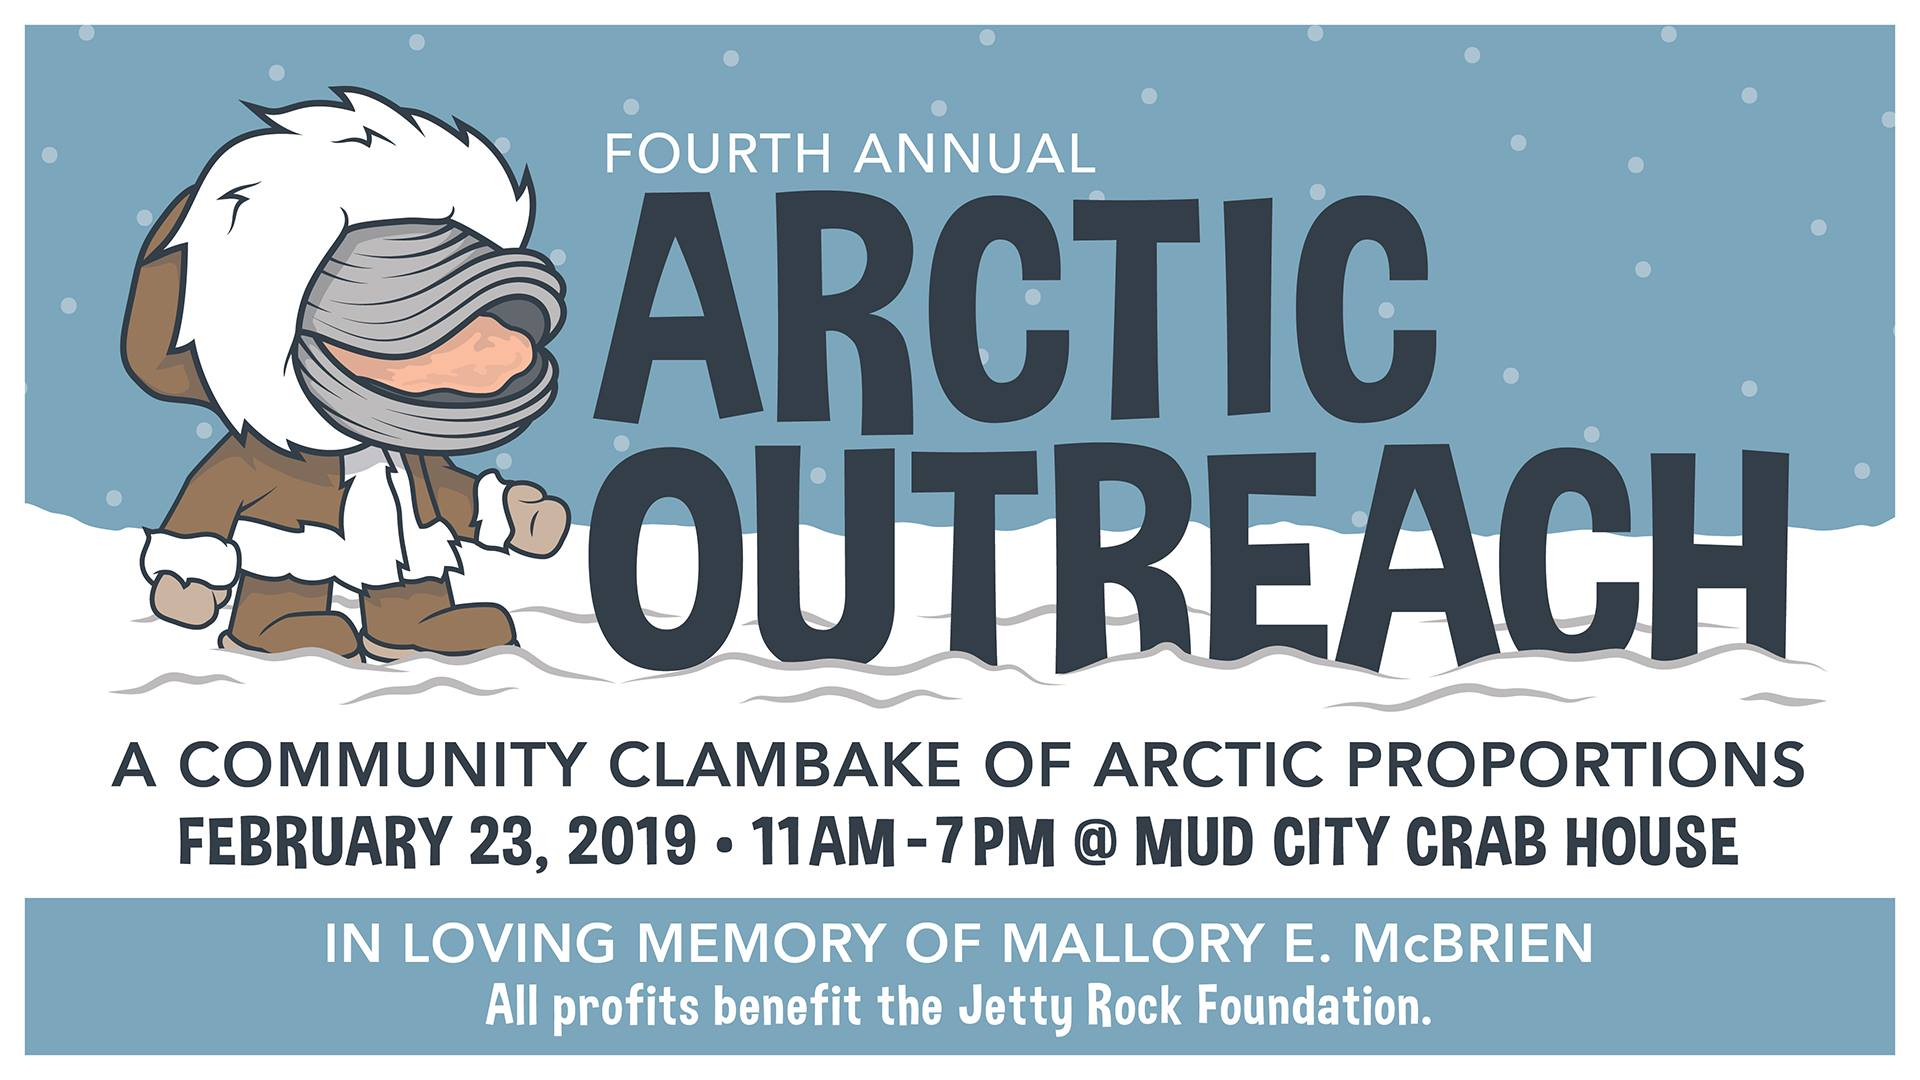 Fourth Annual Arctic Outreach Set For Saturday February 23 At The